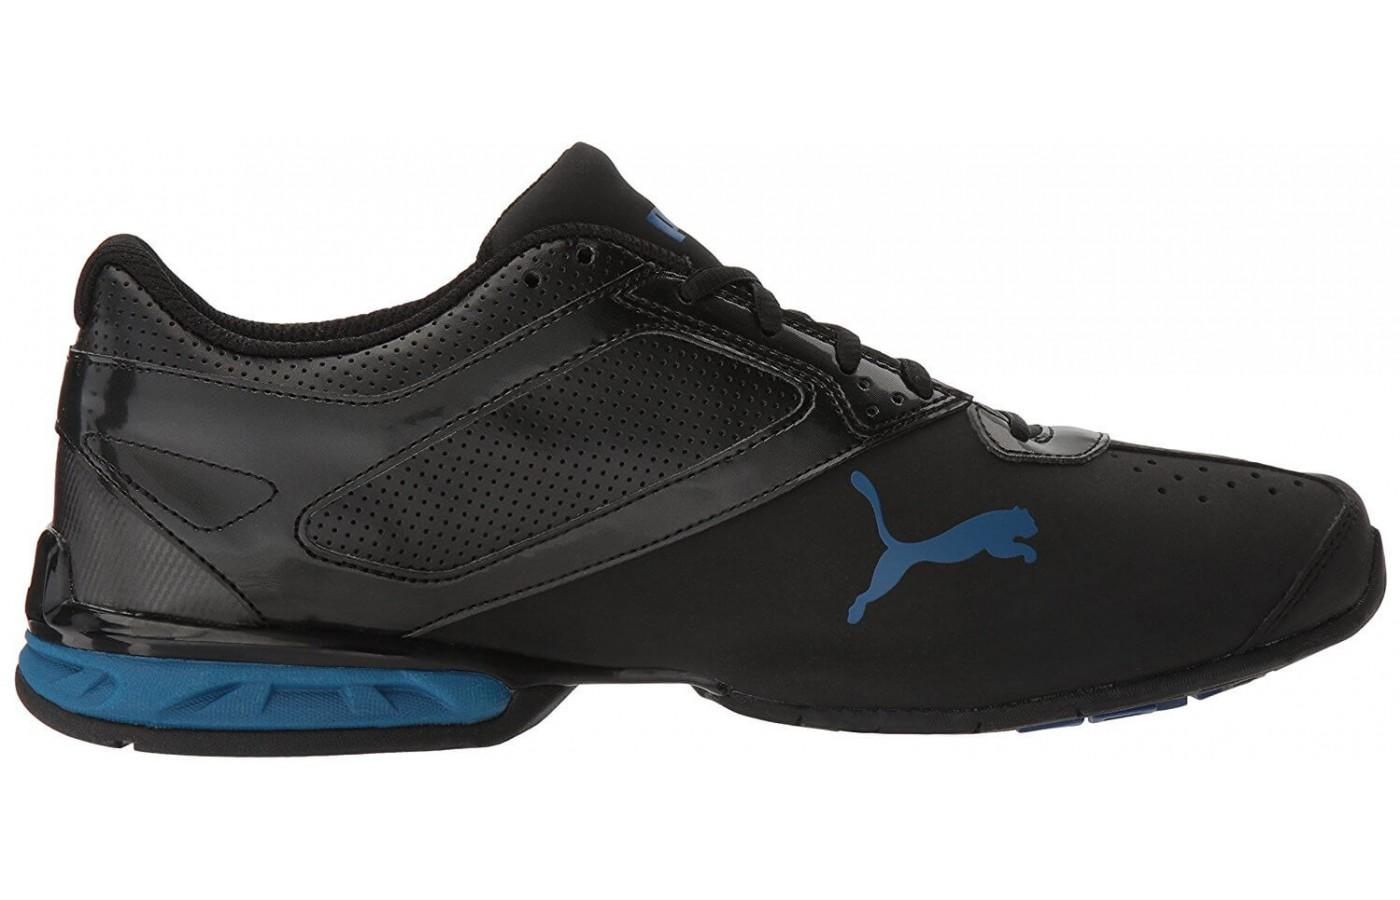 611e053269a The Puma Tazon 6 s sleek color design  The classic Puma logo is visible  here ...